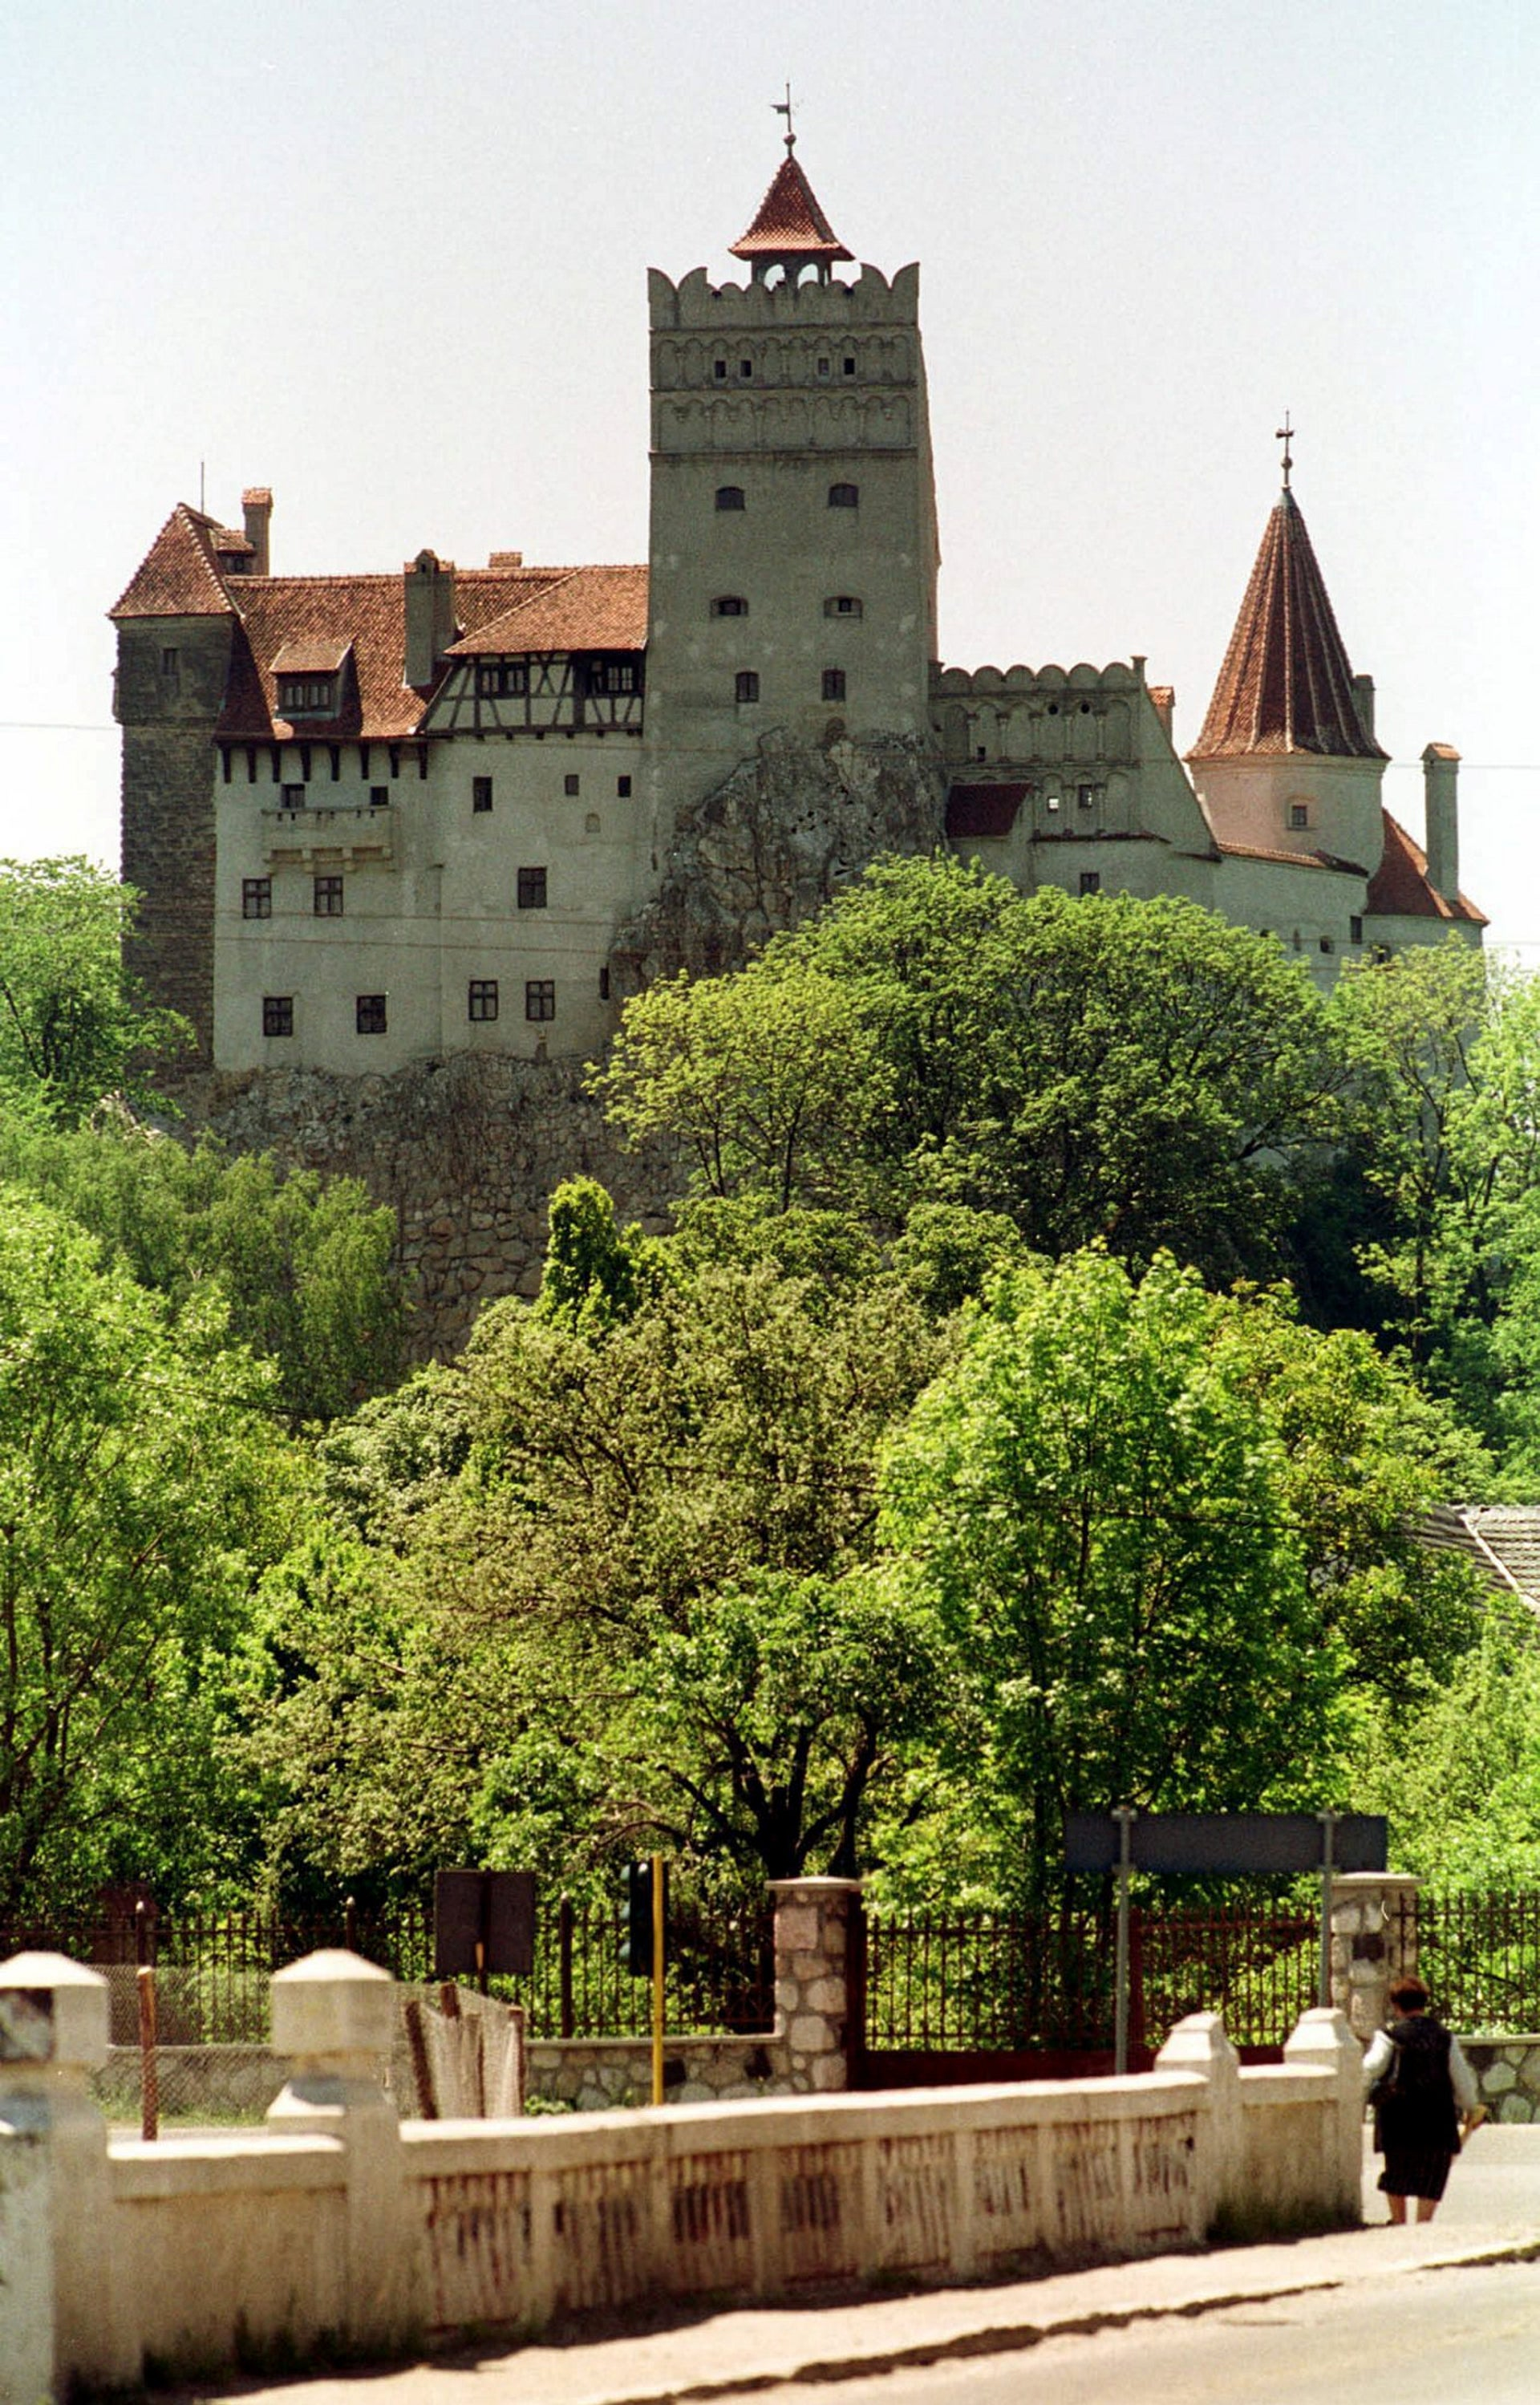 """Transylvanian castle famous for its connections to the 15th century medieval ruler who inspired """"Dracula"""""""